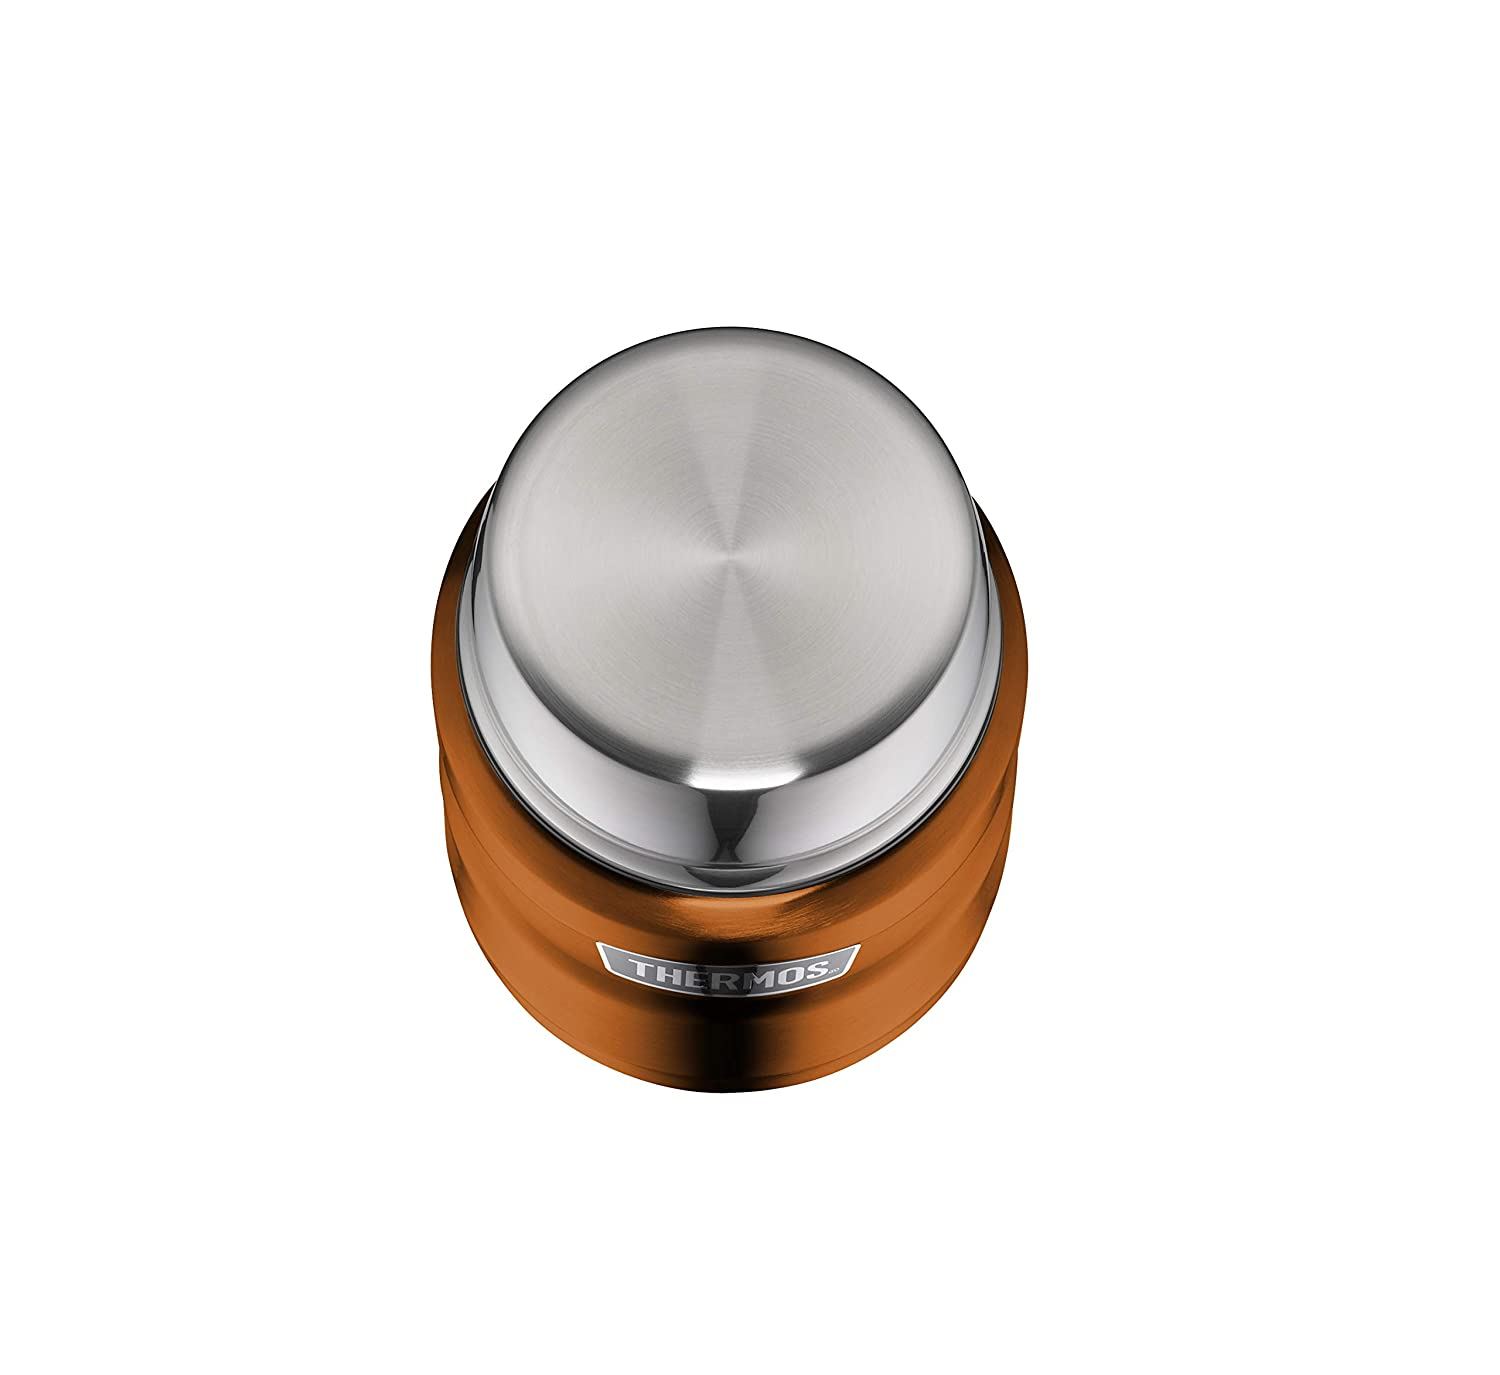 Thermos 4001.256.047/llano Tarro Stainless King color azul 0,47/L acero inoxidable